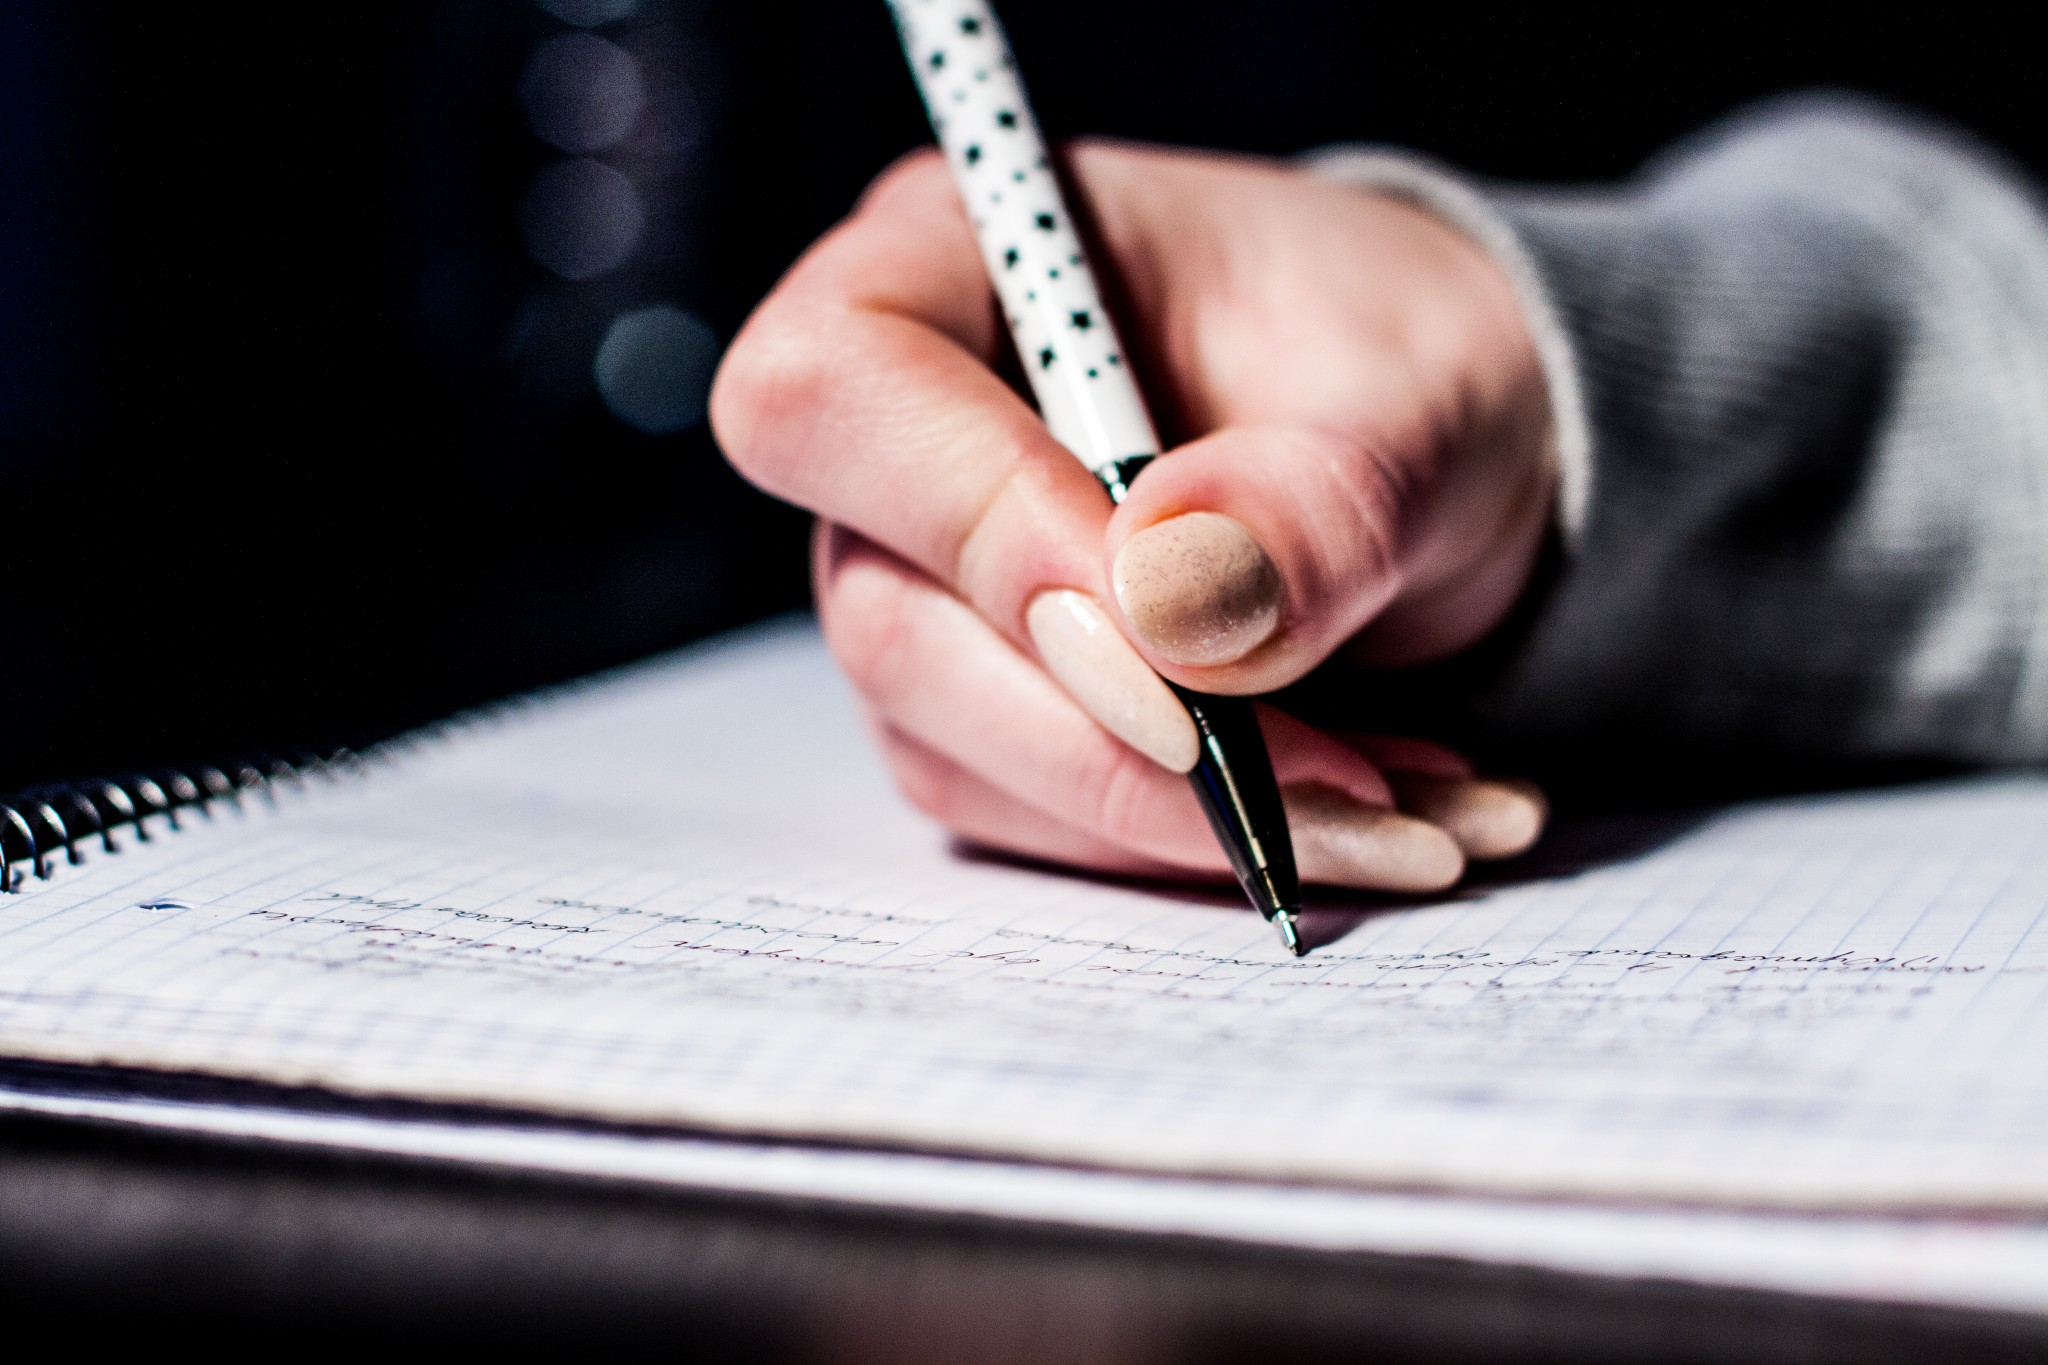 5 things you need to know before studying for the LSAT